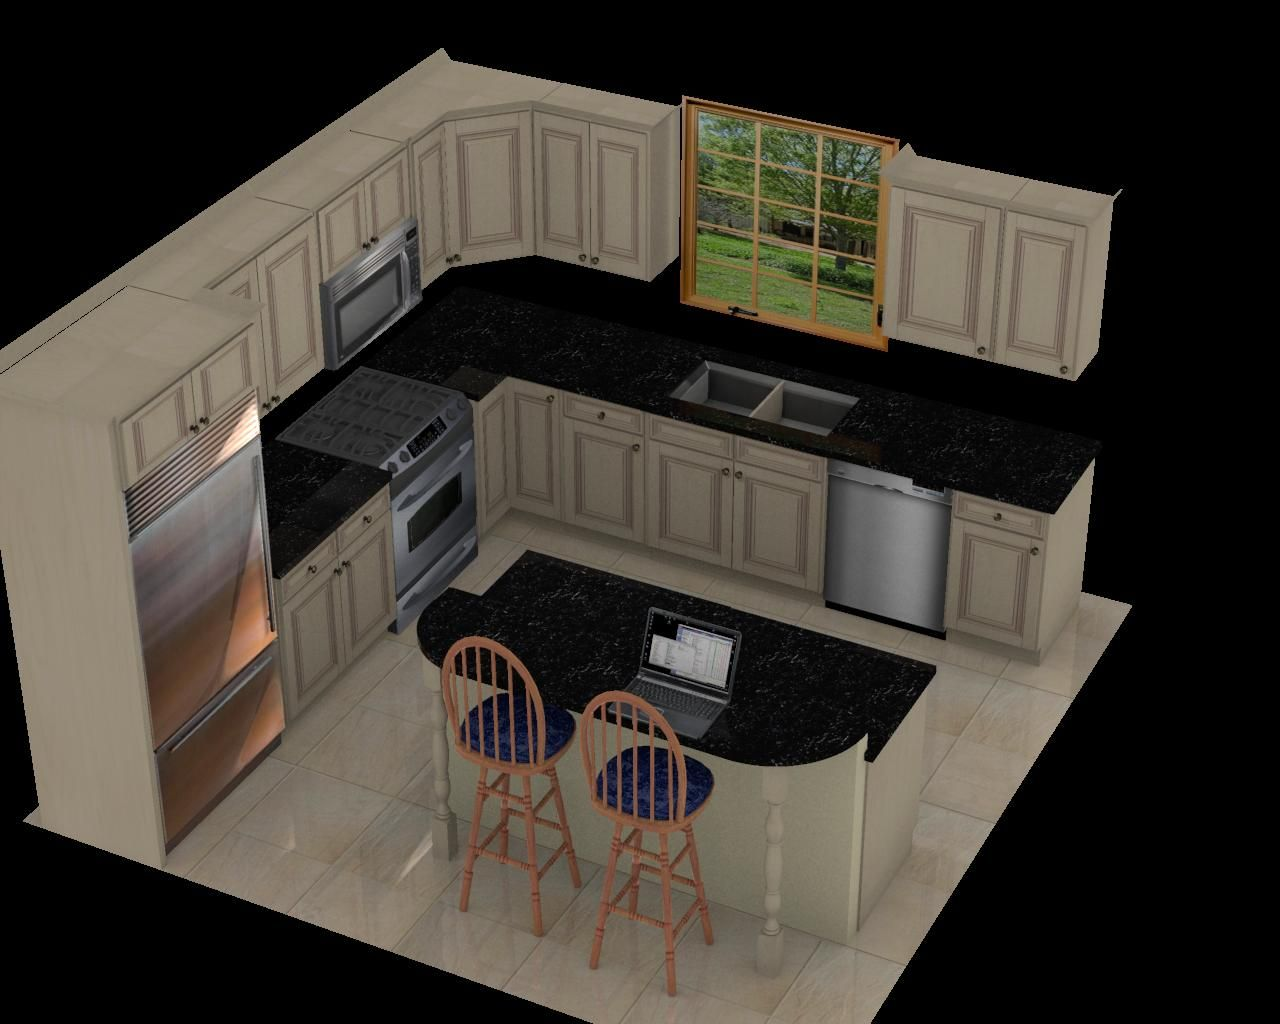 9 x 12 kitchen cabinets luxury 12x12 kitchen layout with island 51 for with 12x12 10391